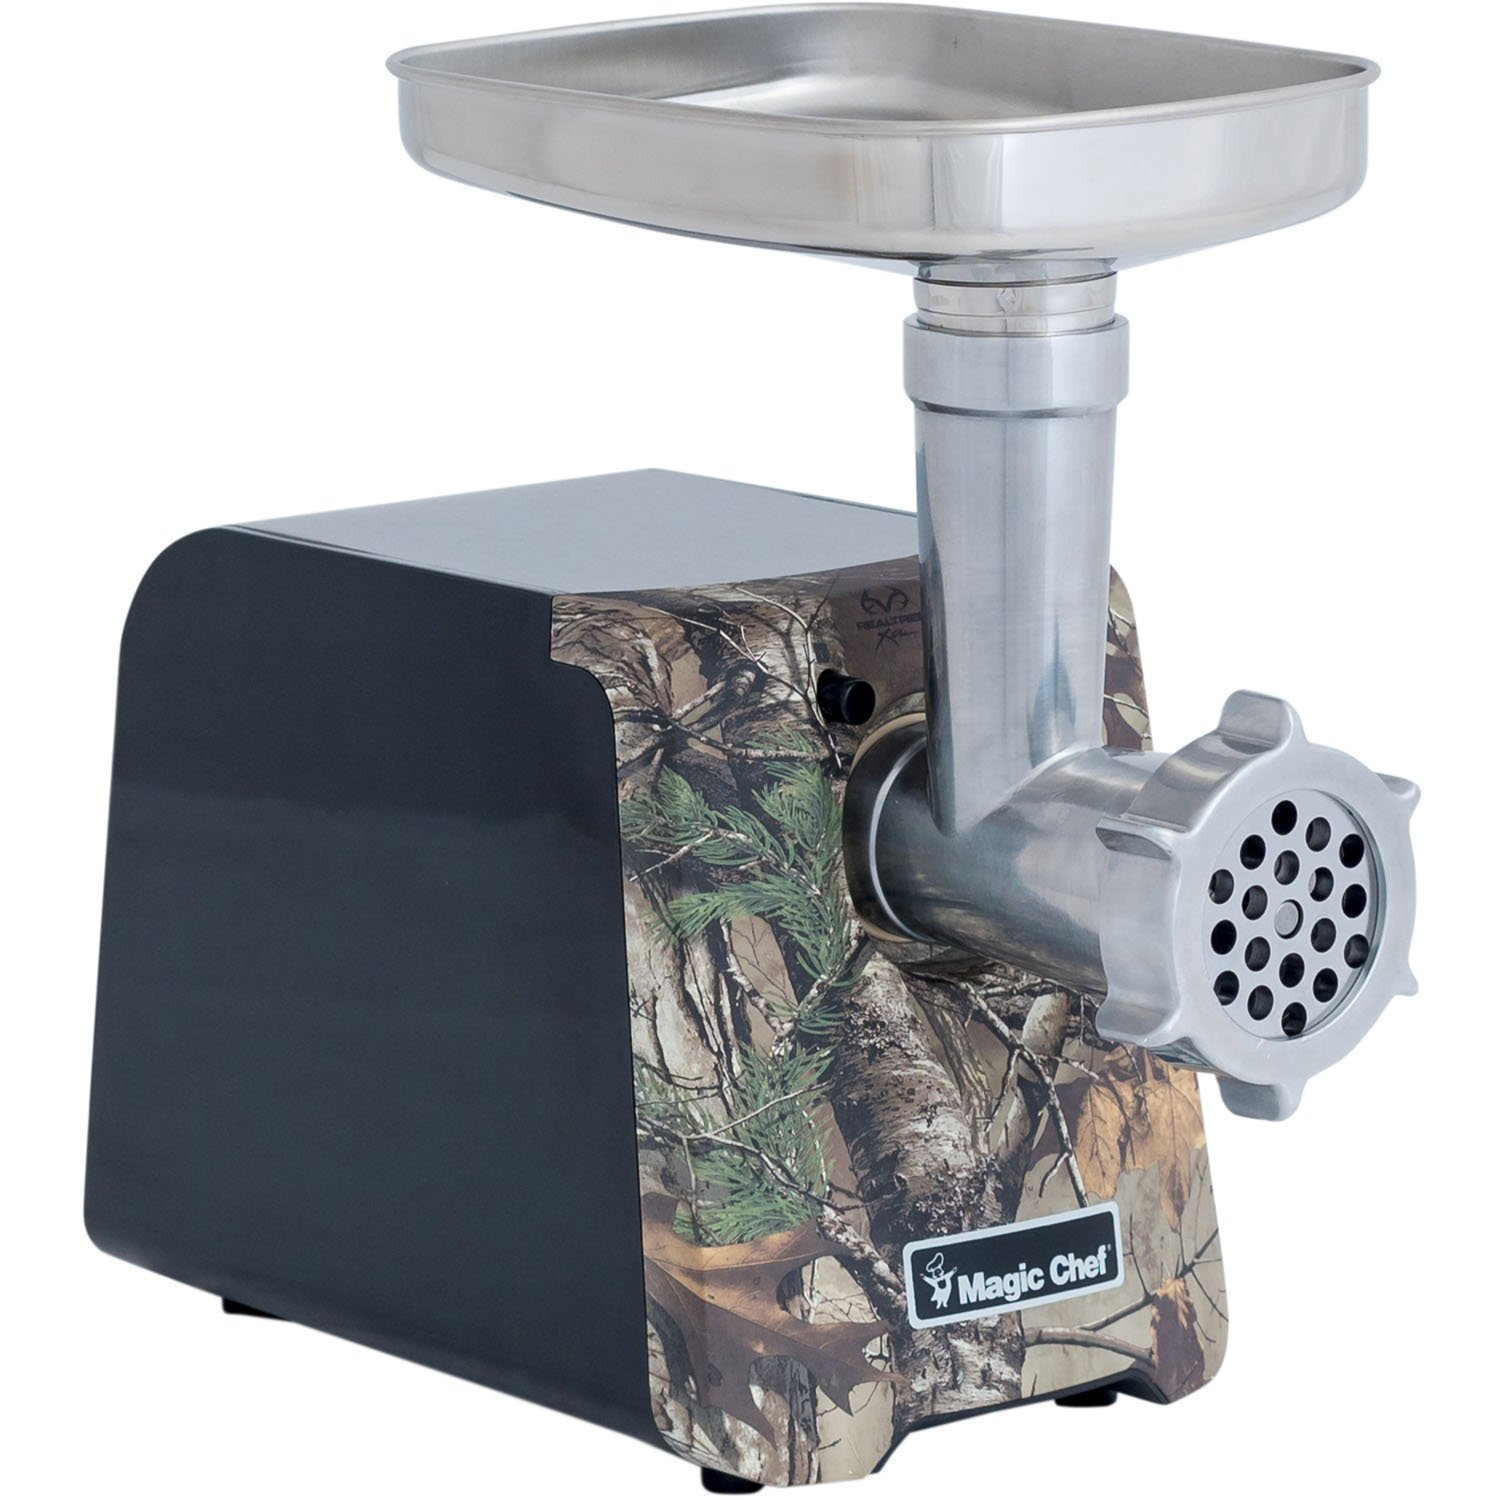 Magic Chef MCLMGRT Meat Grinder, Camouflage by Magic Chef (Image #4)